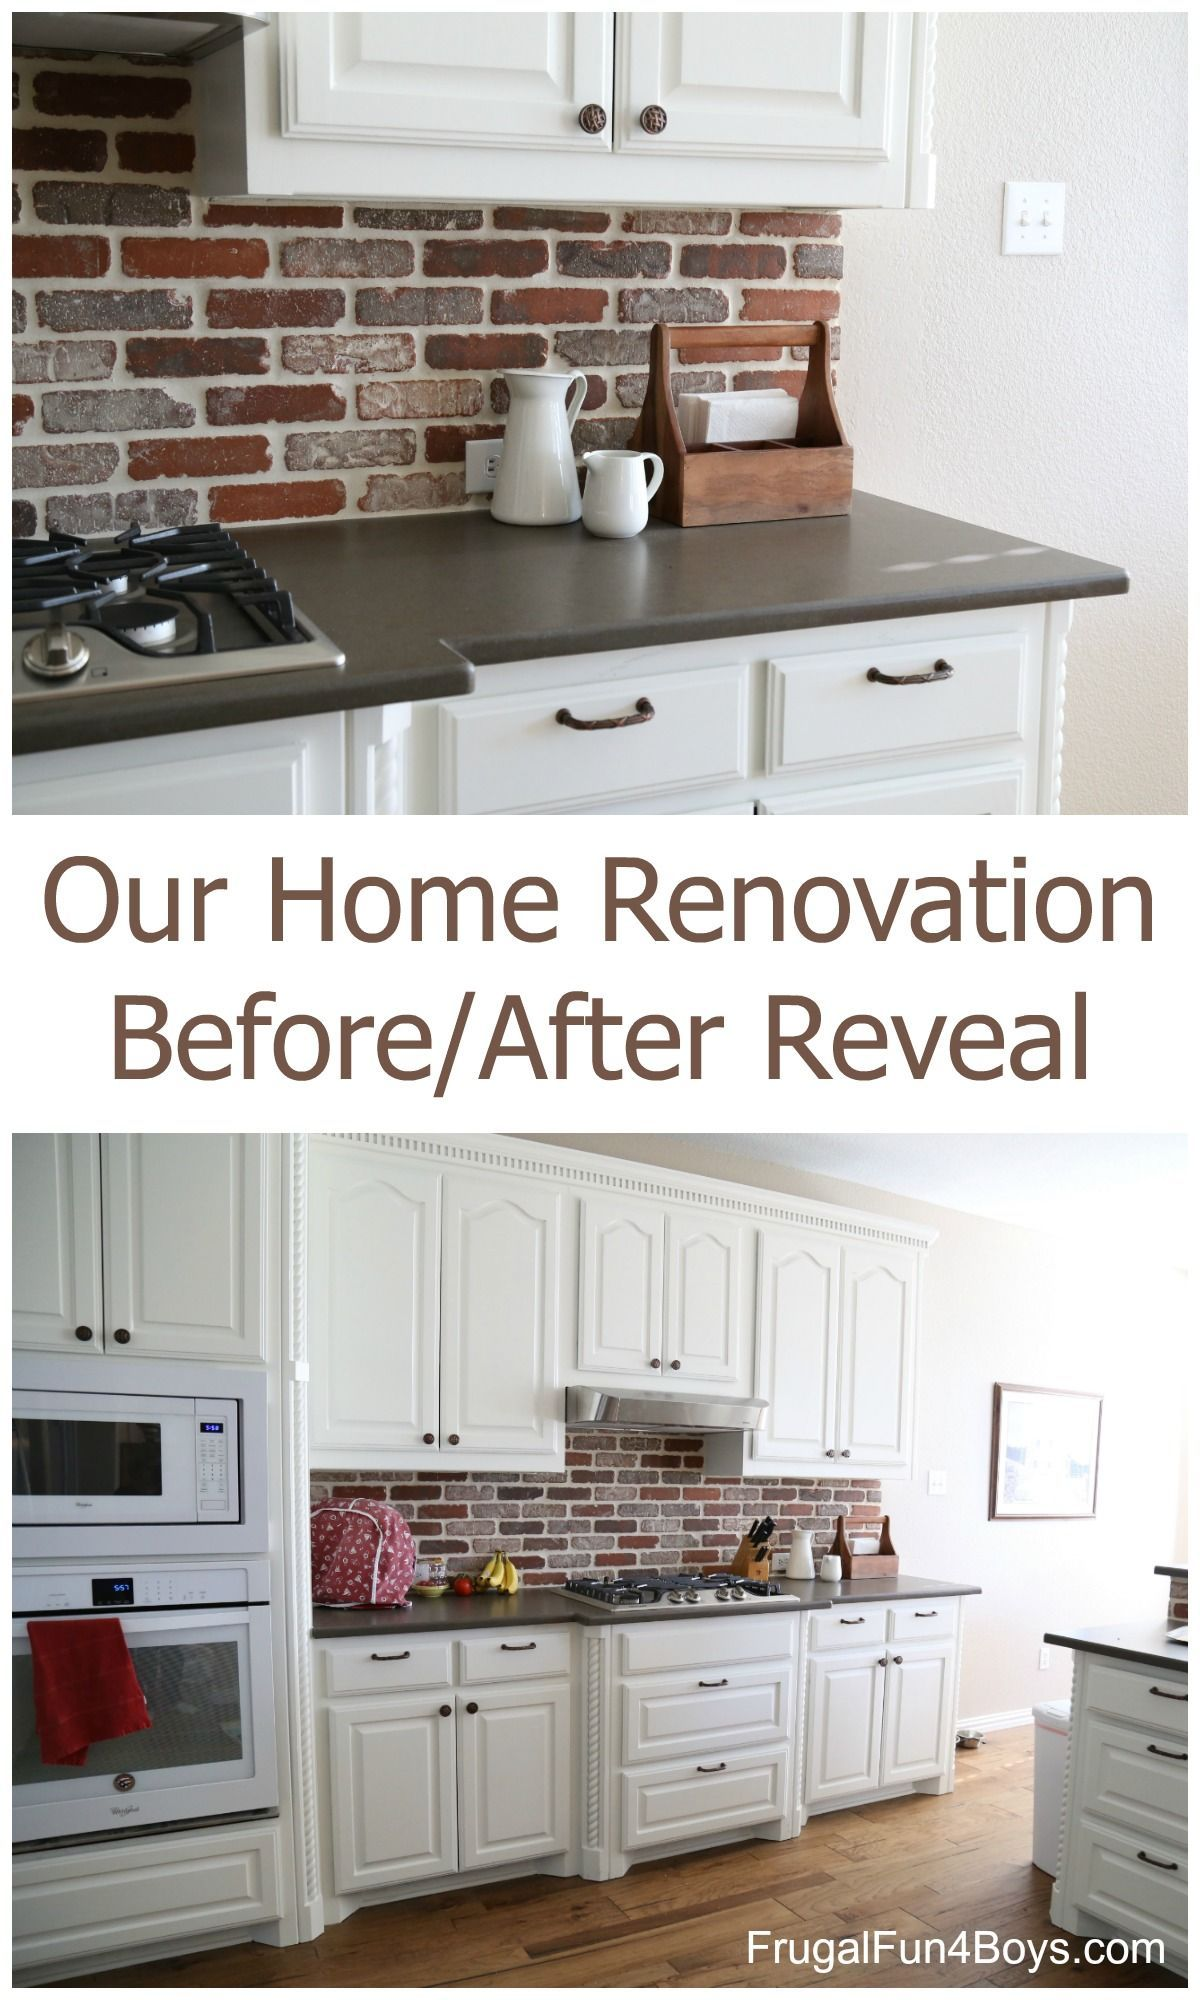 Country Kitchen Decoration Designs With Images New Kitchen Cabinets Renovation Kitchen Cabinet Styles